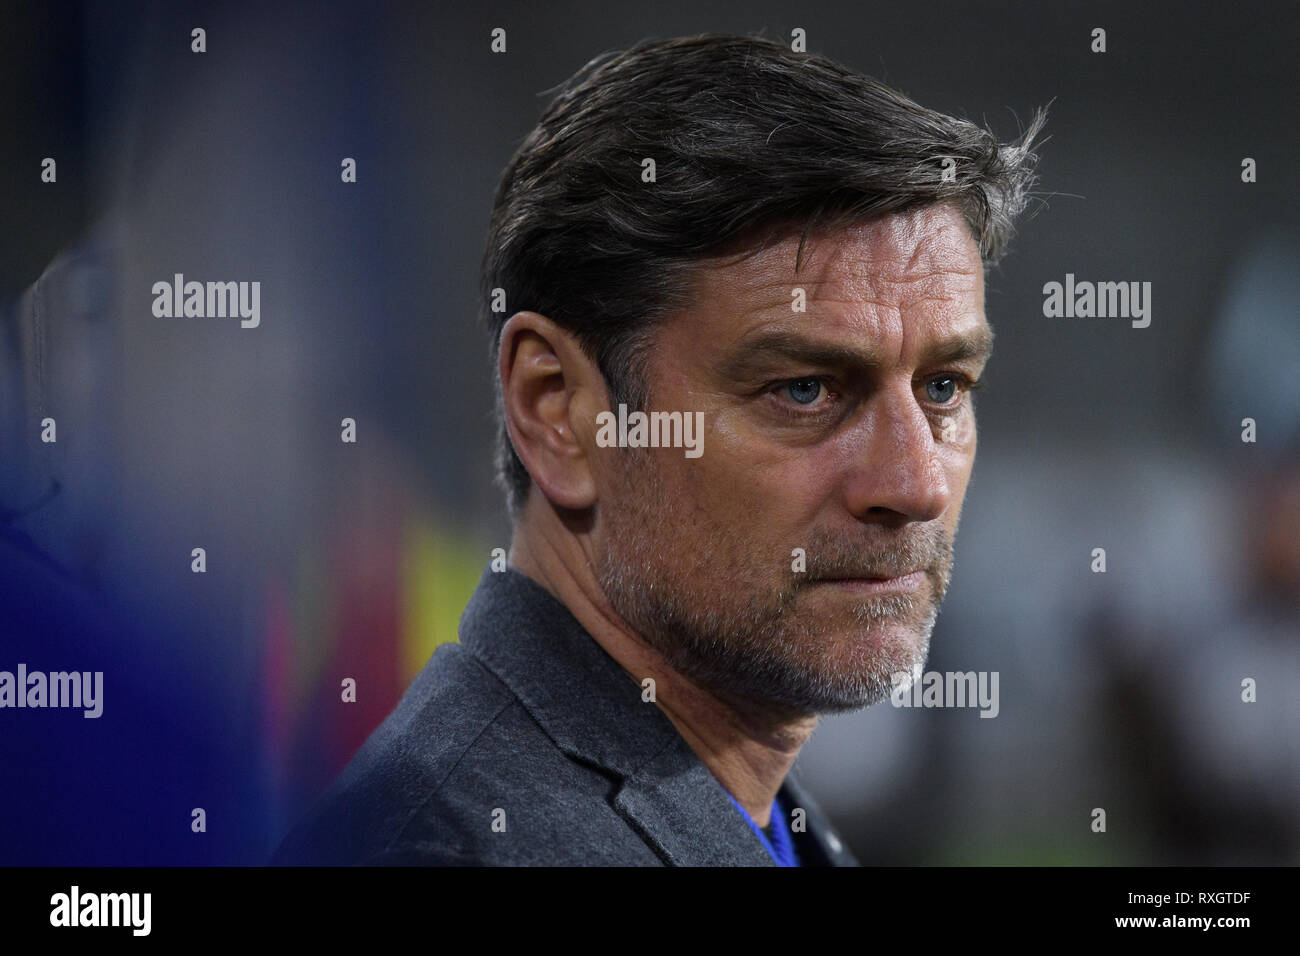 Duisburg, Deutschland. 08th Mar, 2019. Oliver Kreuzer (KSC Sports Director). GES/football/3rd league: Krefelder football club Uerdingen - Karlsruher SC, 08.03.2019 Football/Soccer: 3rd League: KFC Uerdingen vs Karlsruher SC, Duisburg, March 8, 2019 | usage worldwide Credit: dpa/Alamy Live News - Stock Image